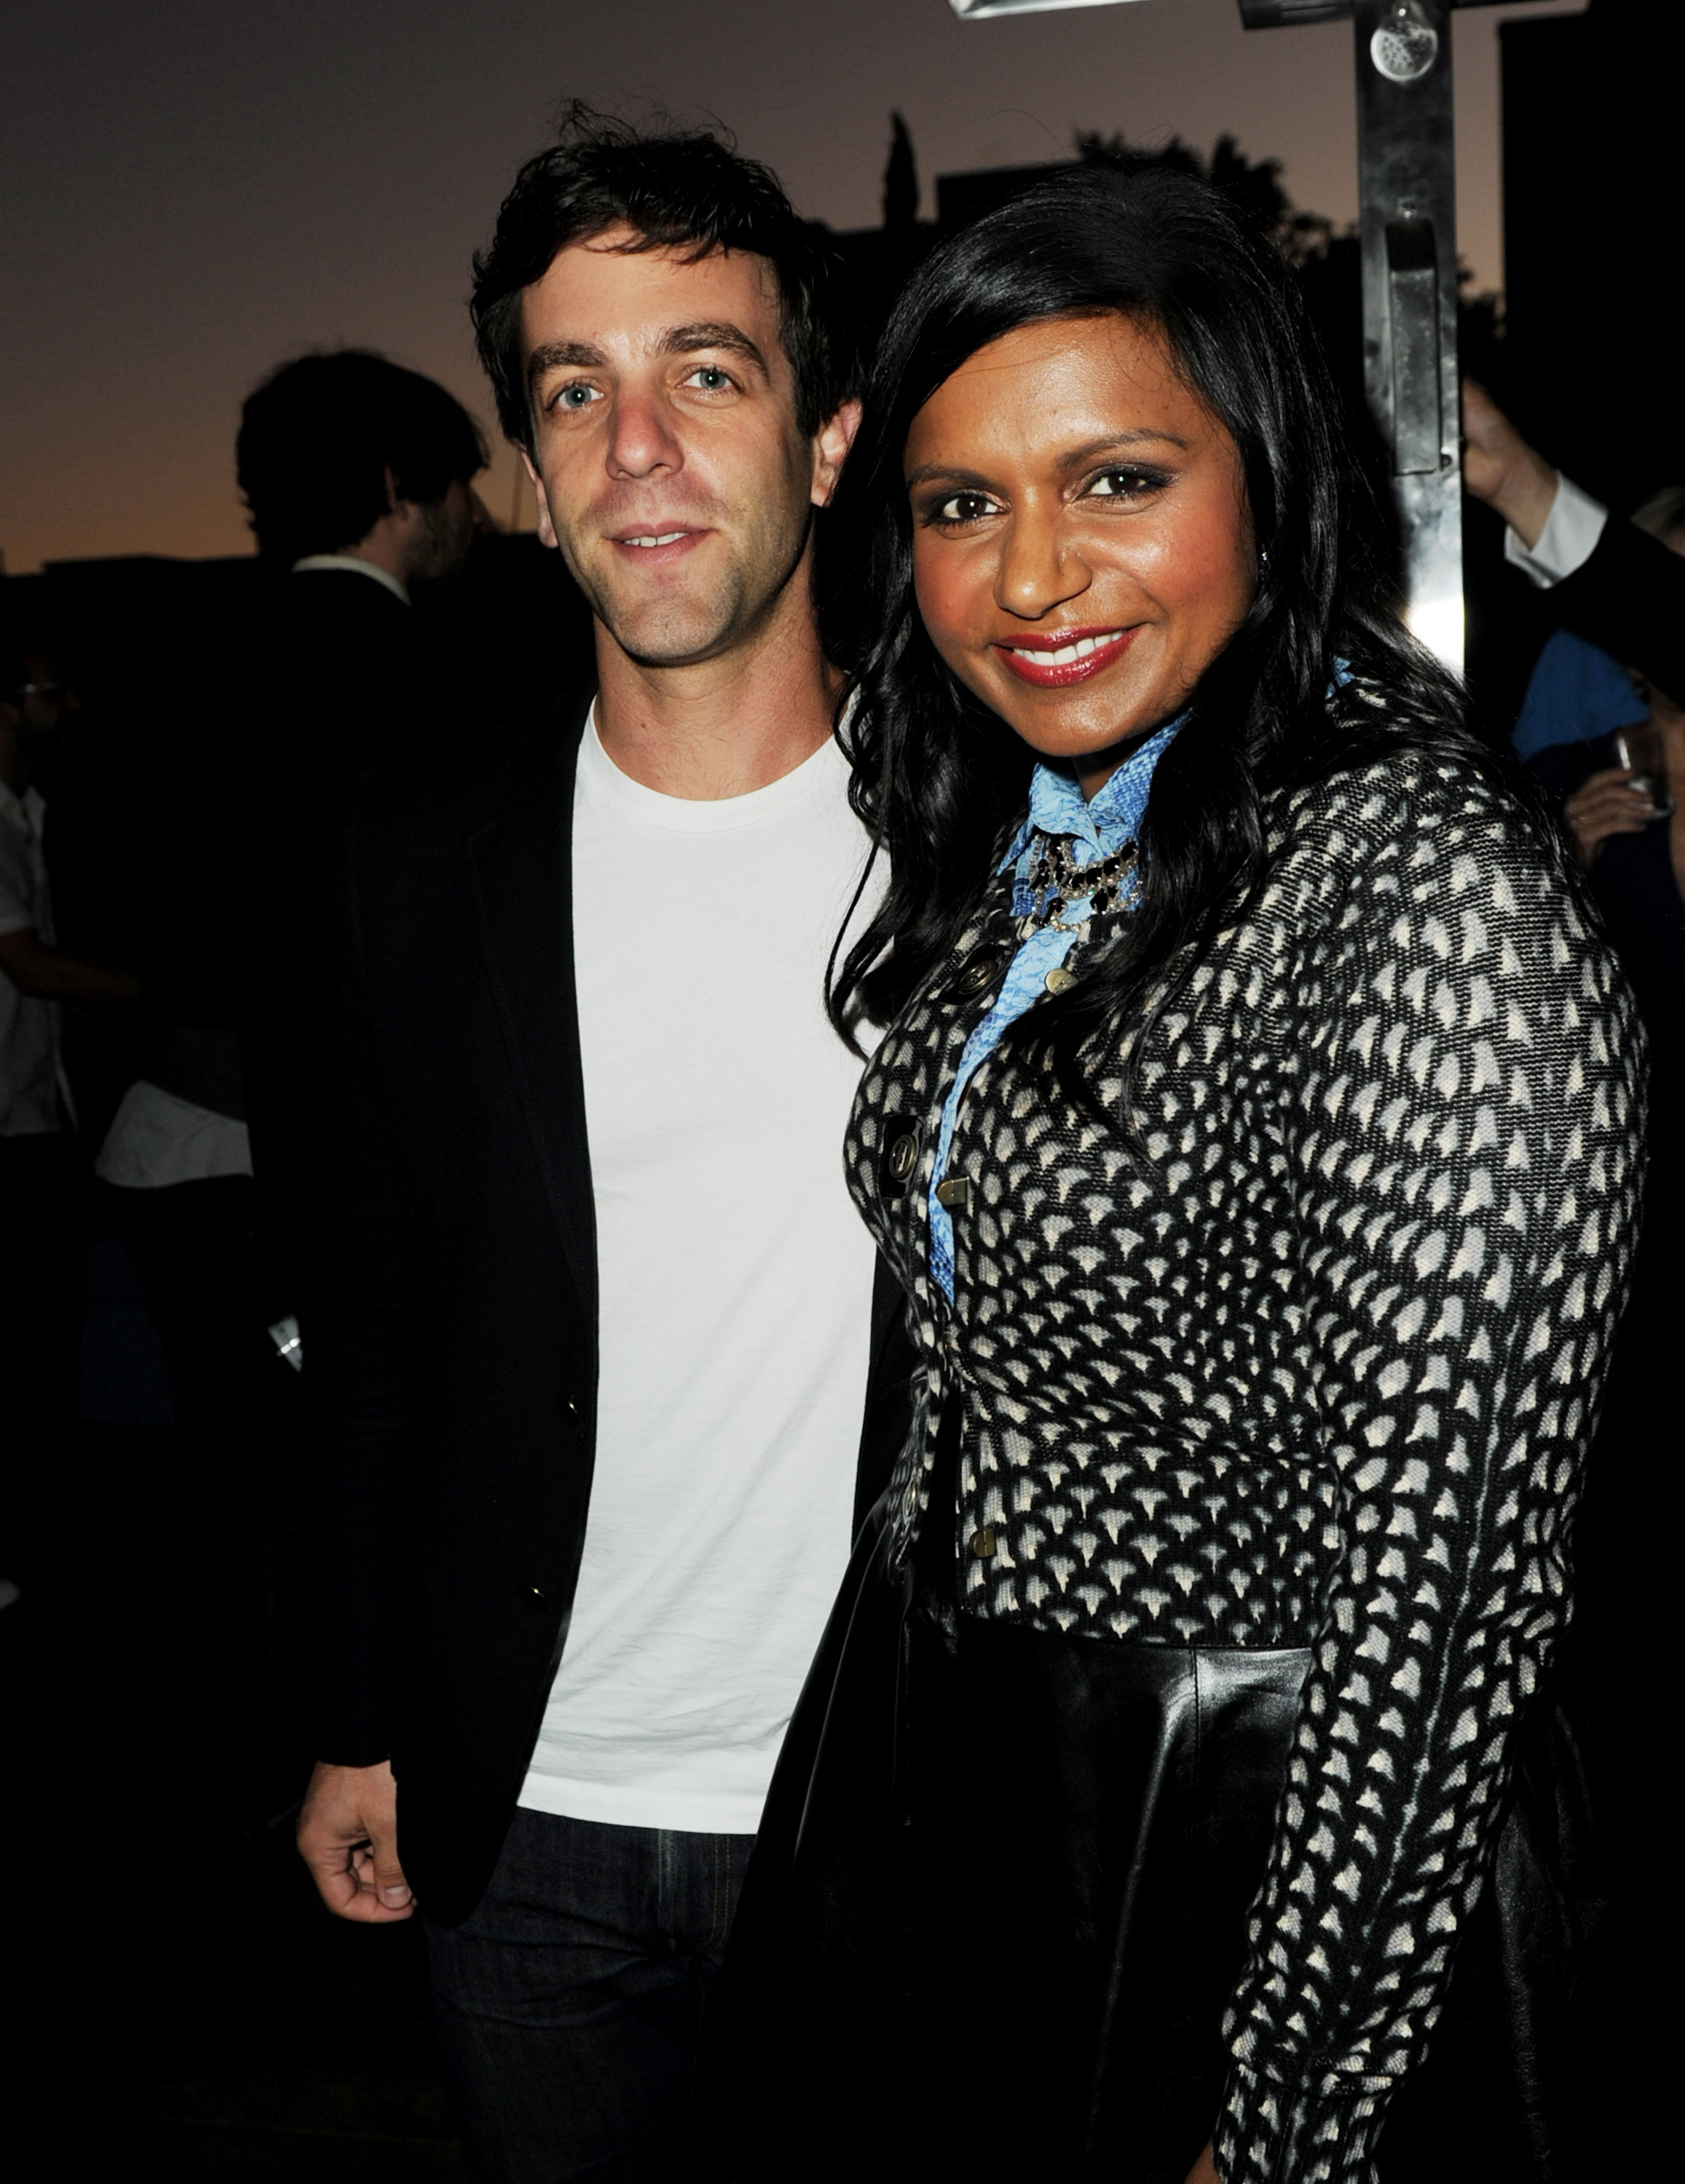 Bj Novak Reveals What He Really Thinks About Mindy Kaling And What Its Like Texting With Her